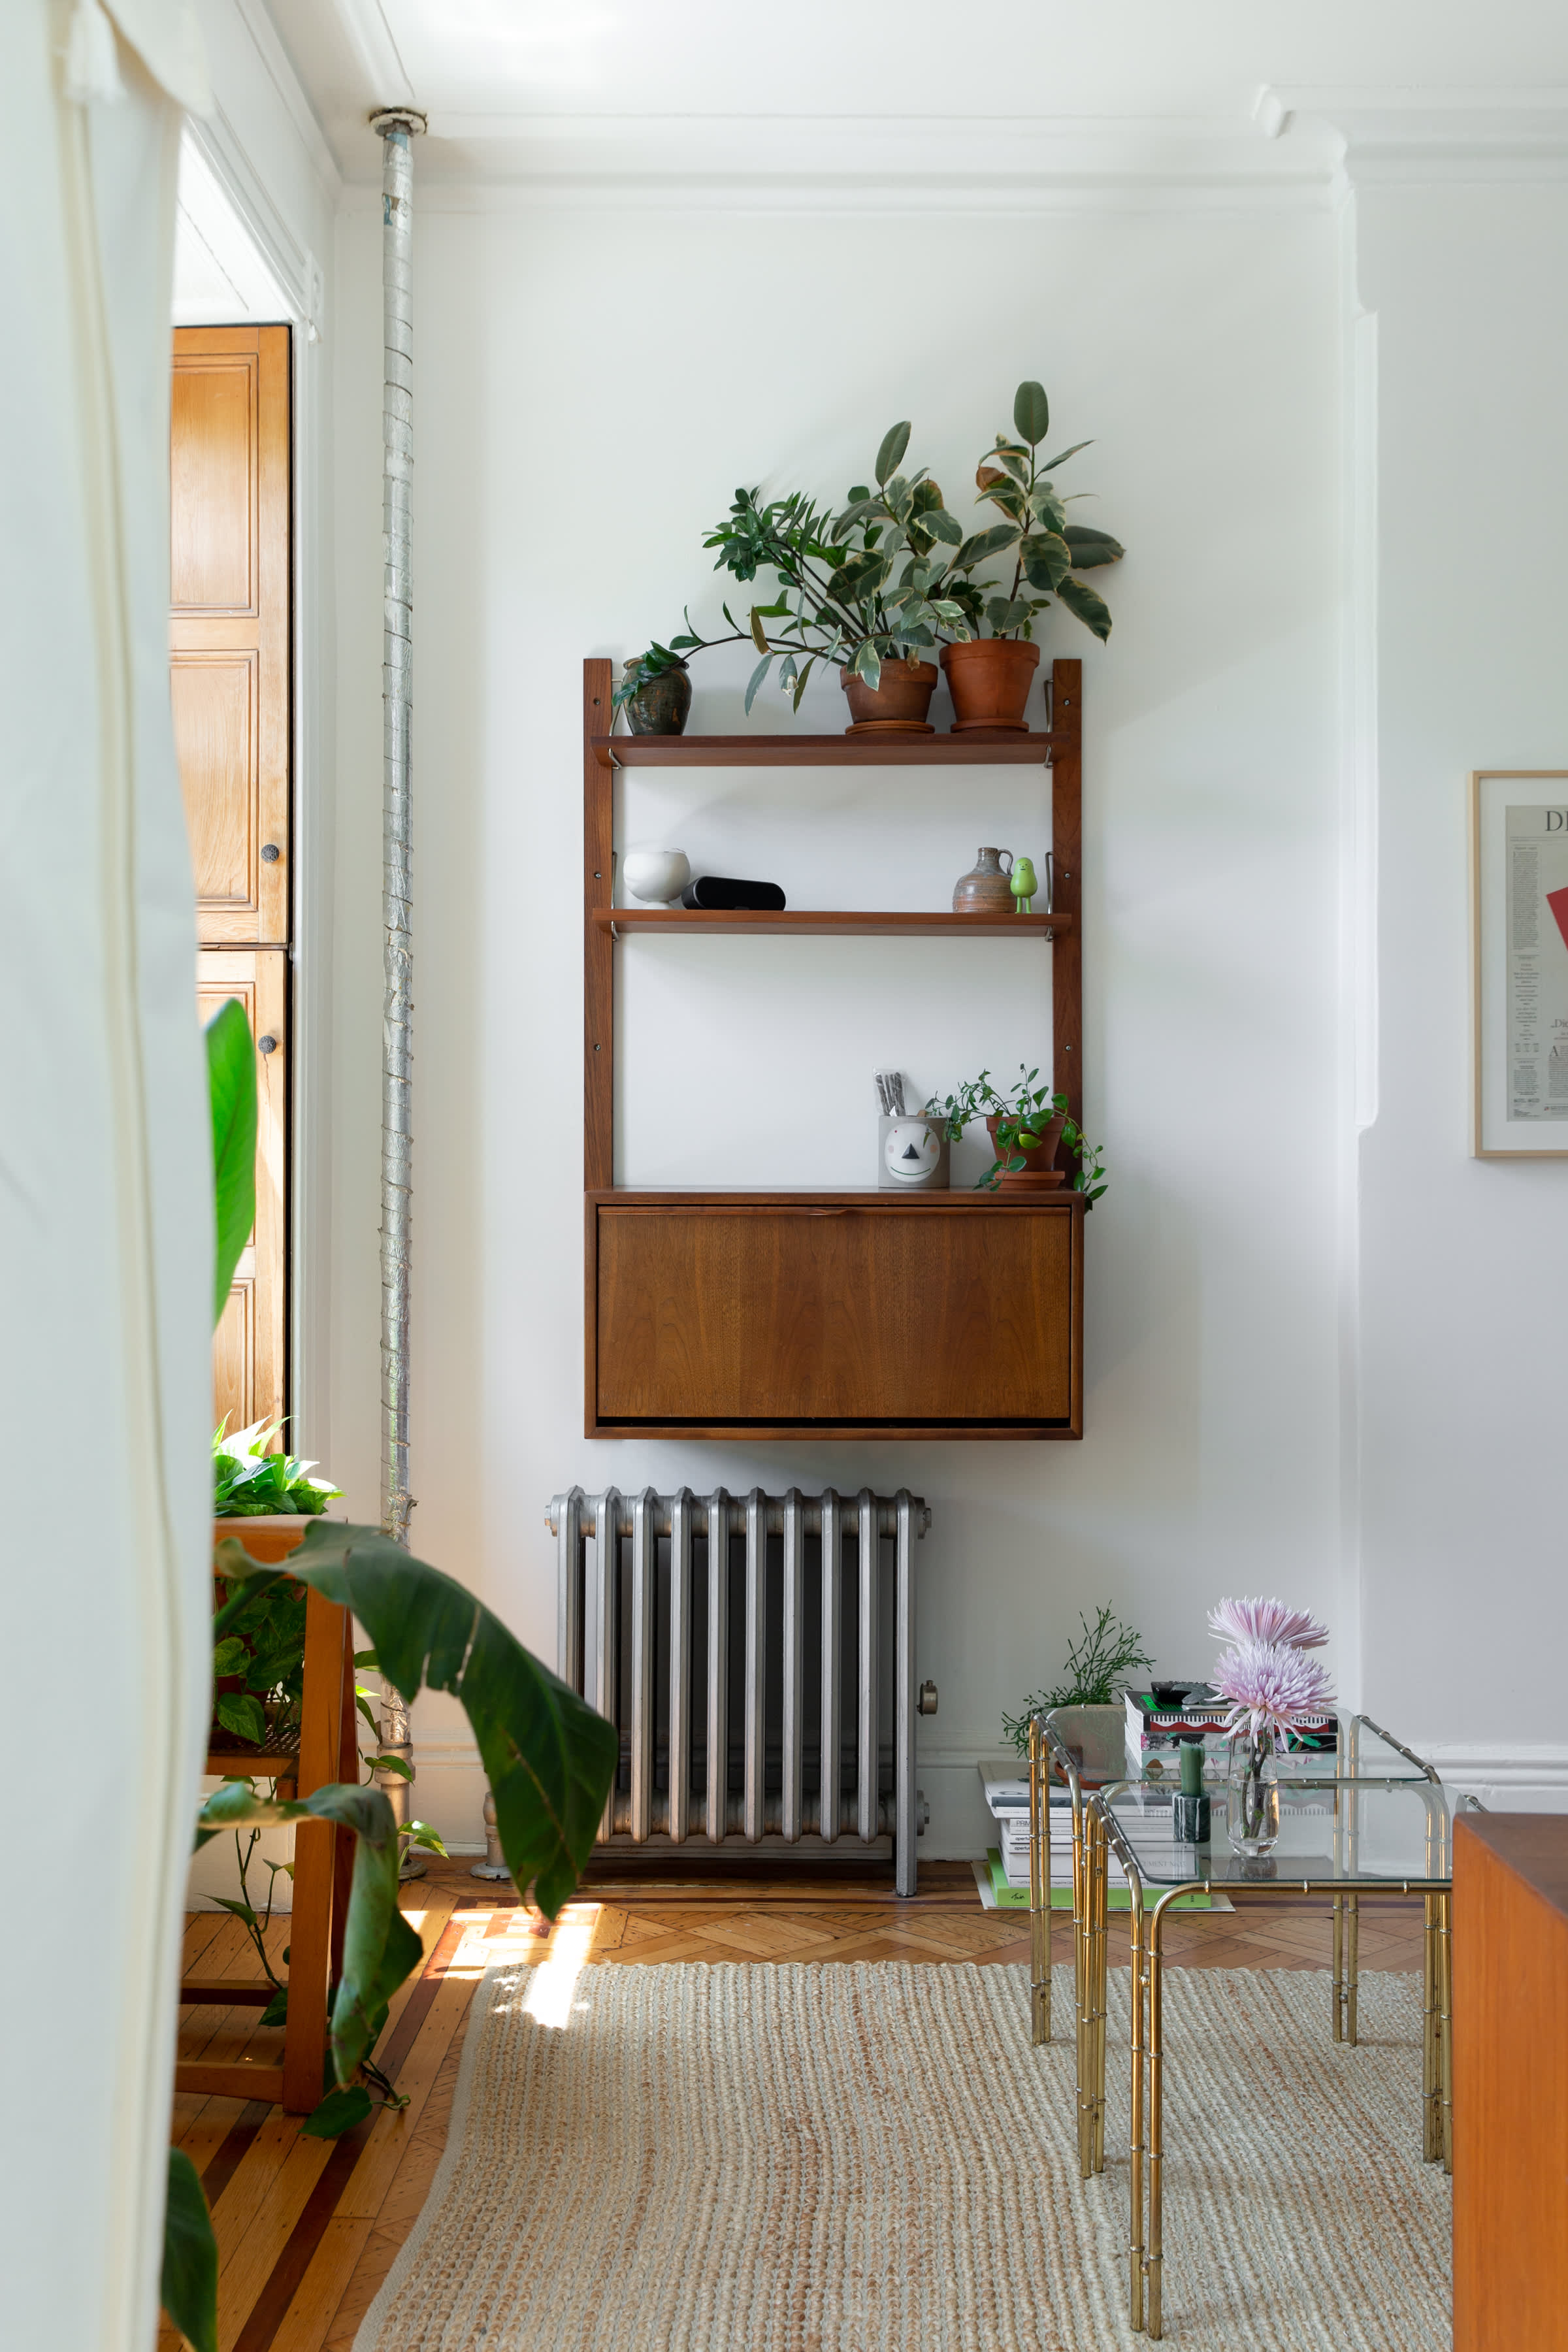 400-Square-Foot Studio Apartment Small Space Tips ...